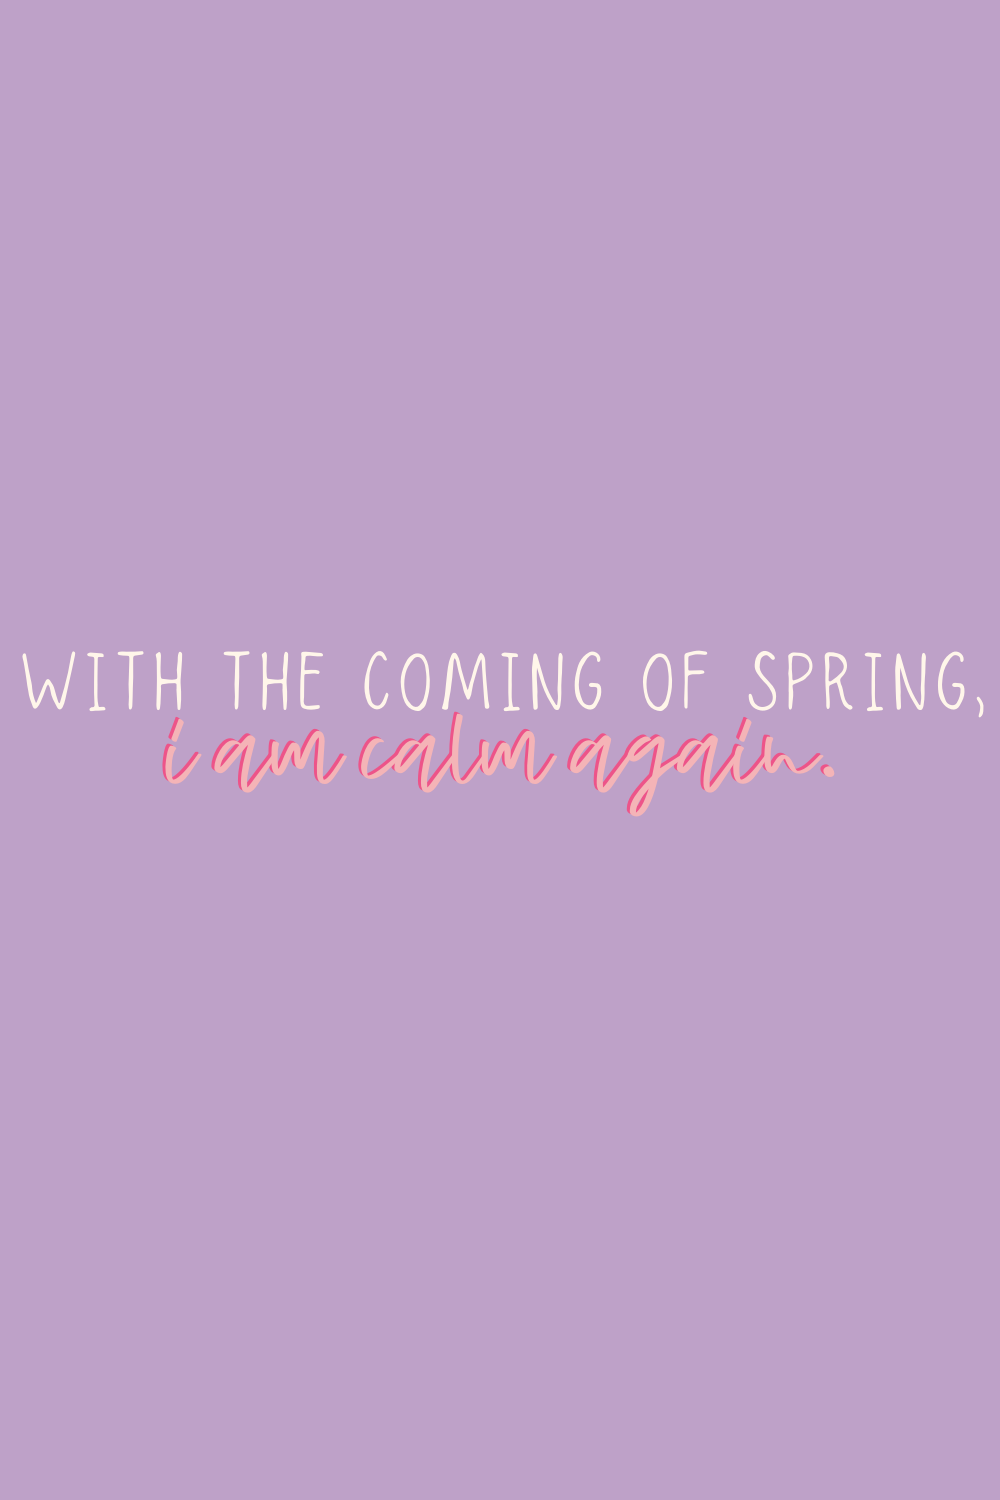 Calm Sayings For Spring